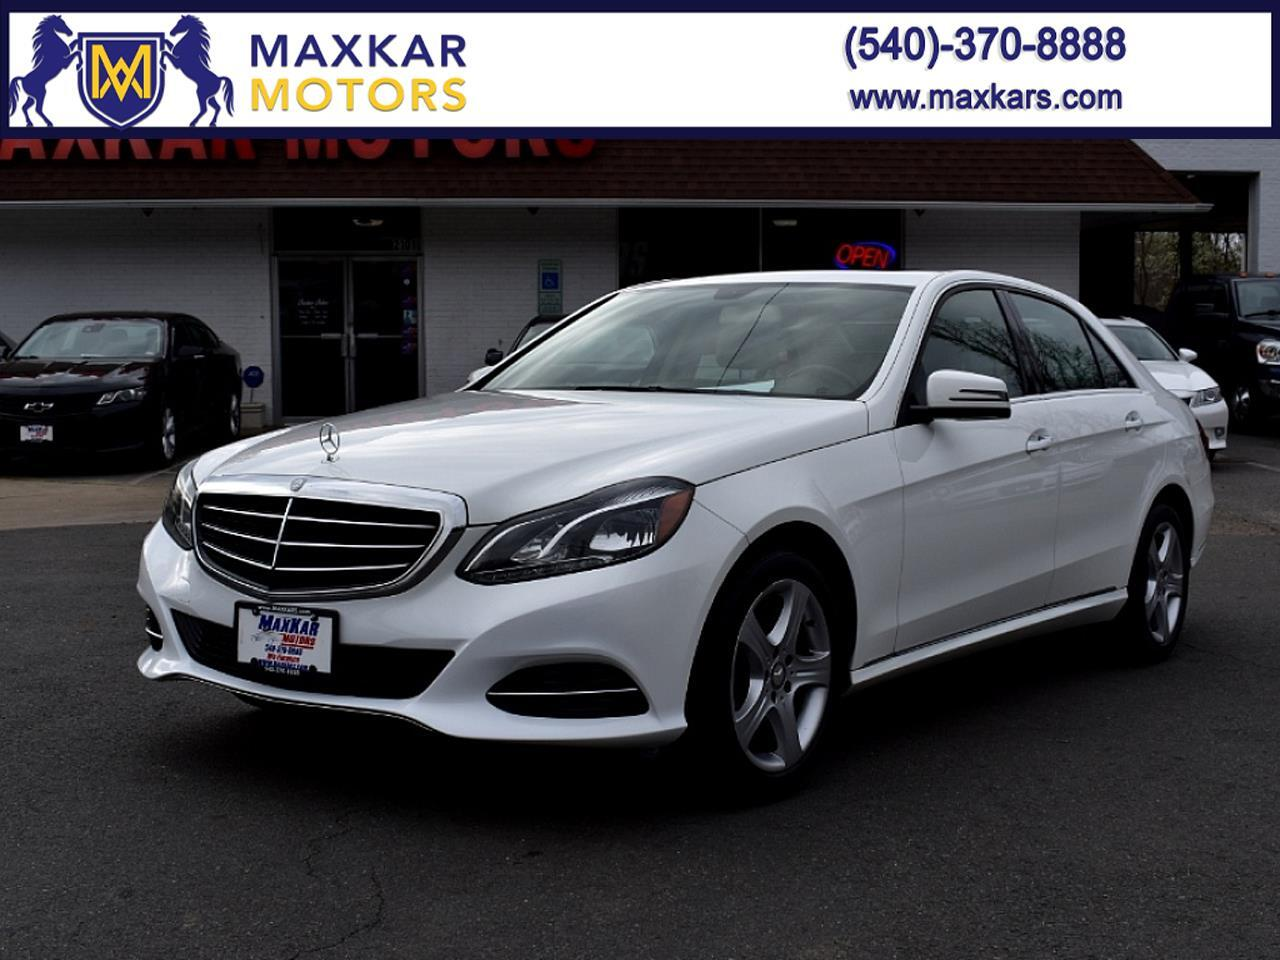 Mercedes-Benz E-Class E350 Luxury 4MATIC Sedan 2014